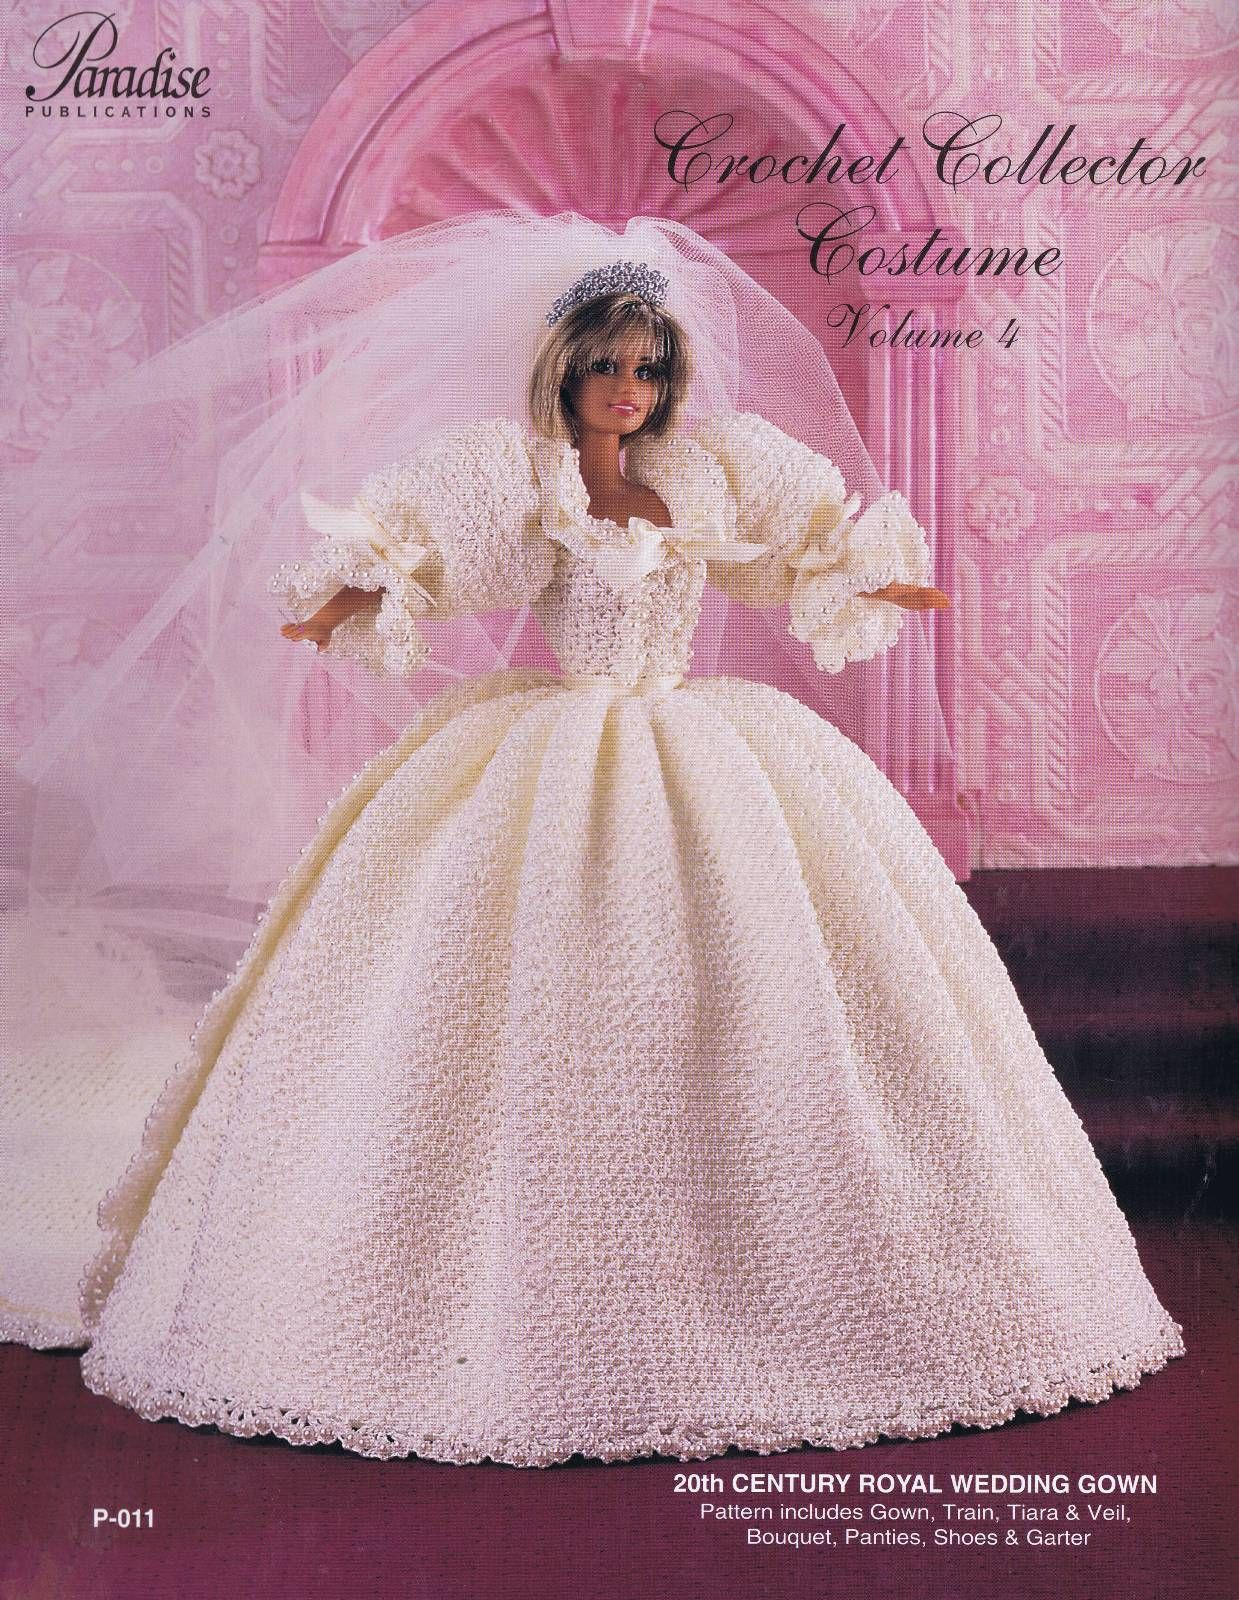 Paradise crochet pattern fashion doll costume 20th century royal paradise crochet pattern fashion doll costume 20th century royal wedding gown ebay bankloansurffo Gallery